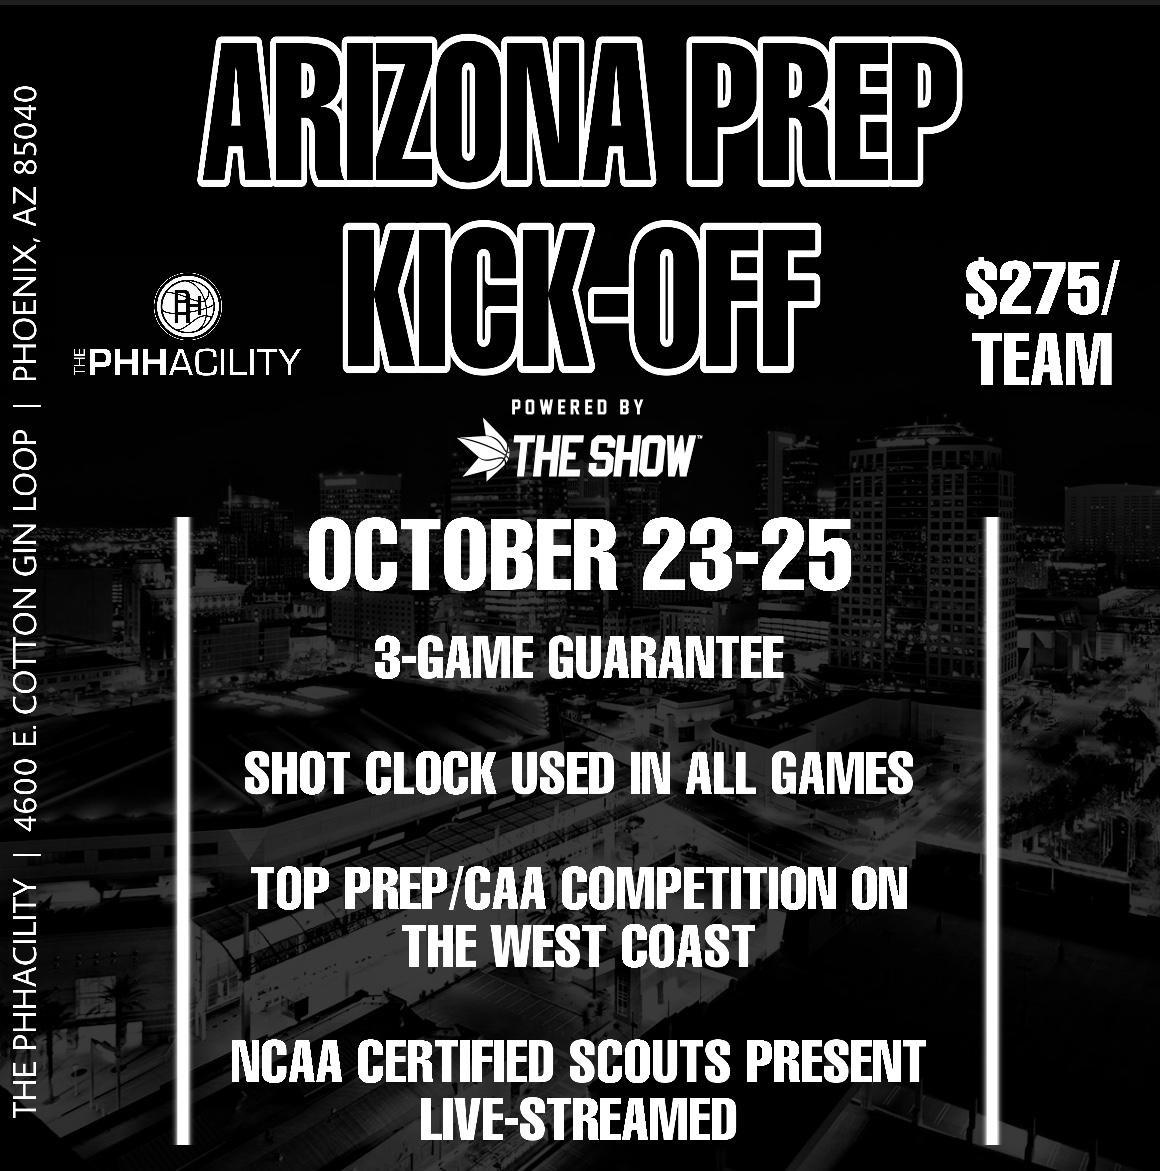 Let's Get This SHOW Started!  Arizona Prep School Kick-Off By @theShowJLVargas / @GreggRosenberg1  Only 1 Month Away🏀🌵  Top Scouts, JUCO, NAIA, D3, & D2 Coached Have Confirmed Already  Register Now...This Event Will Sell Out Quickly!  https://t.co/1vkEXlQIrO https://t.co/7wAGWOHAVD